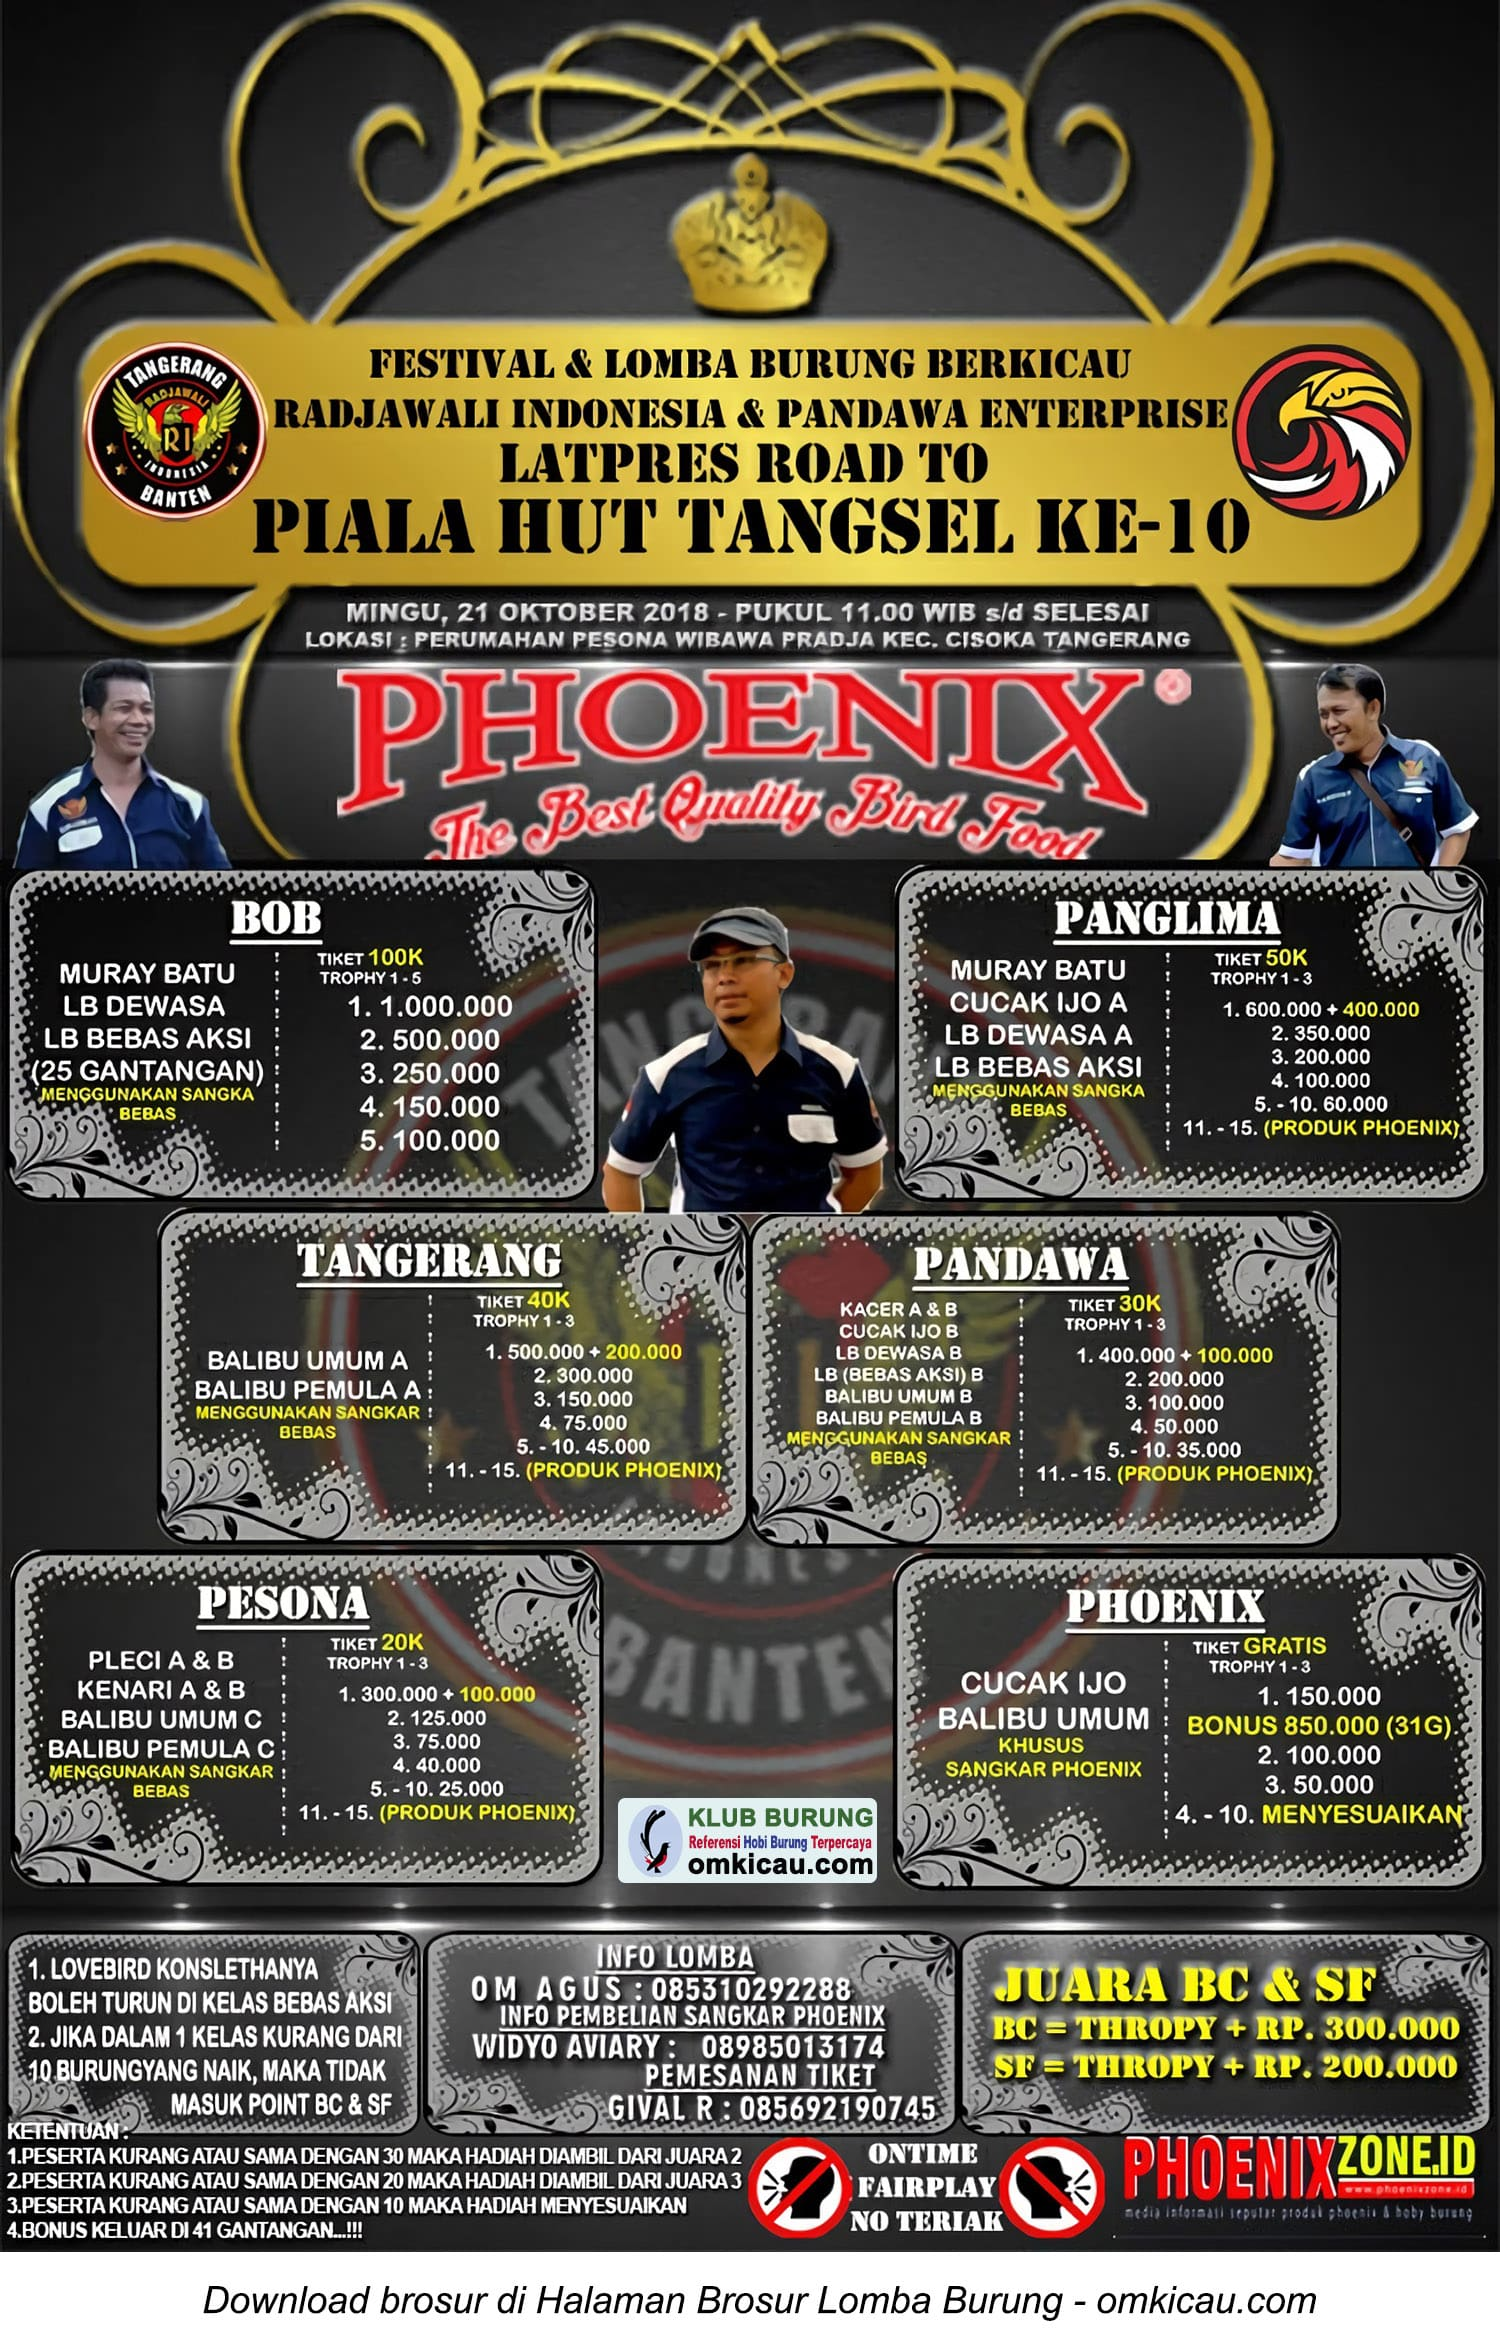 Road to Piala HUT Ke-10 Tangsel